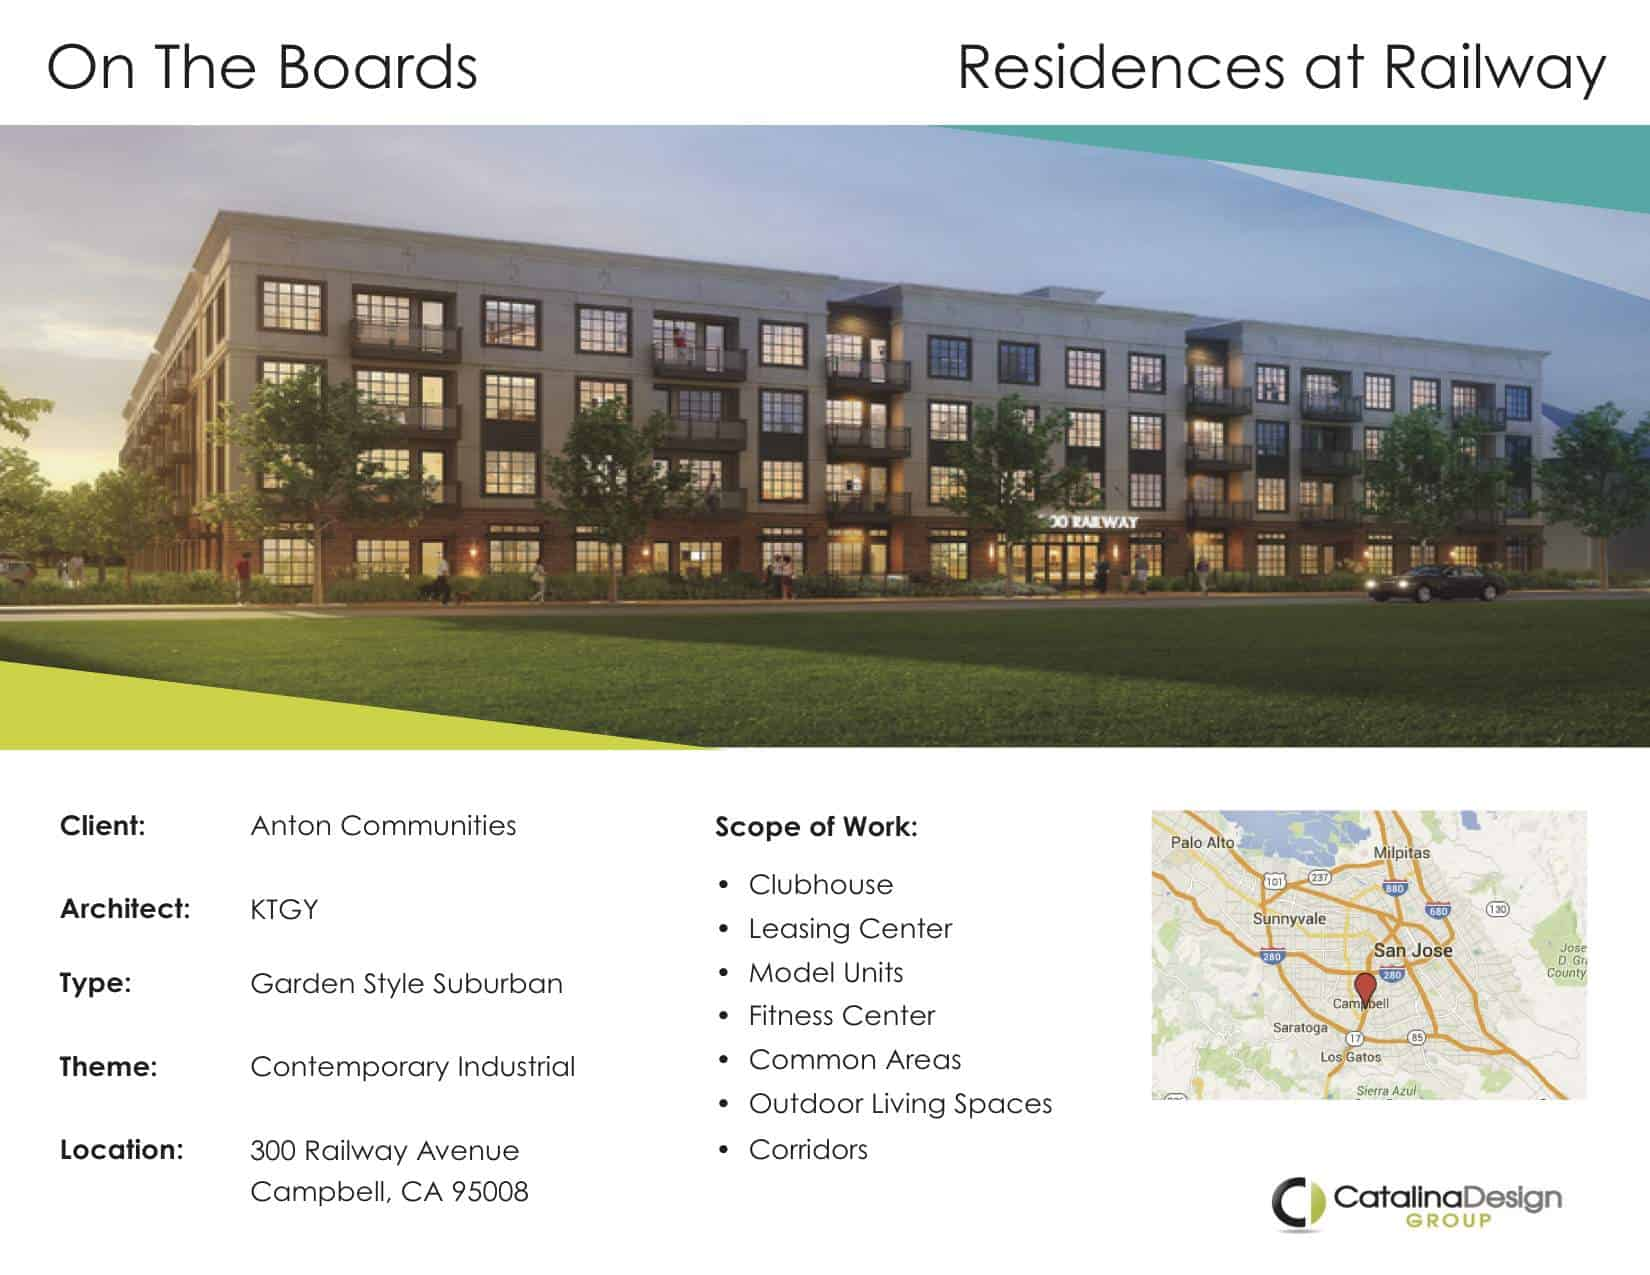 Residences at Railway Anton Communities Campbell, CA, Commercial Interior Design Projects